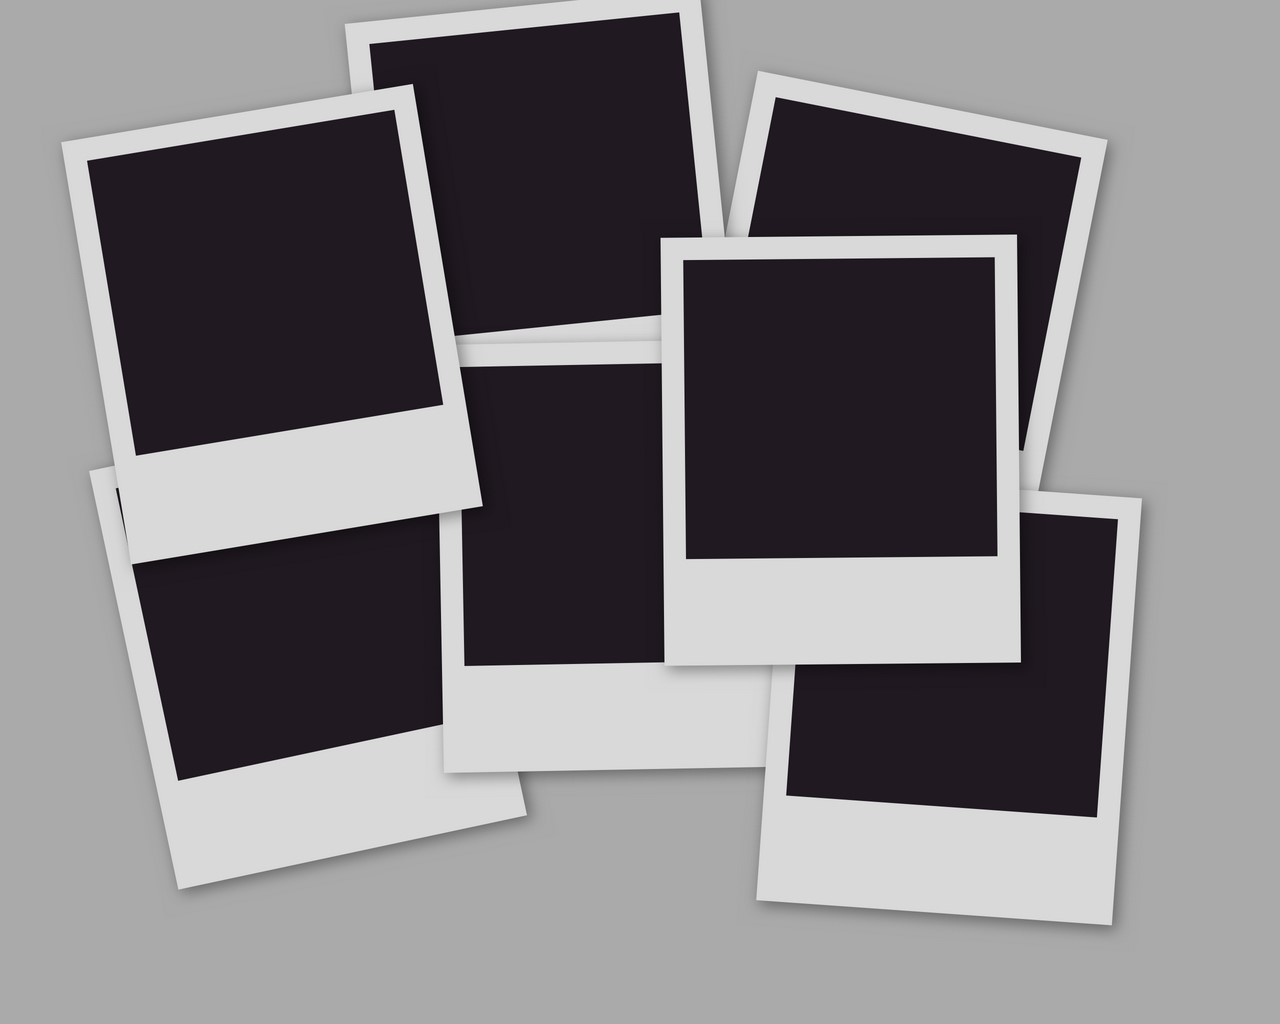 poloroid | Free backgrounds and textures | Cr103.com